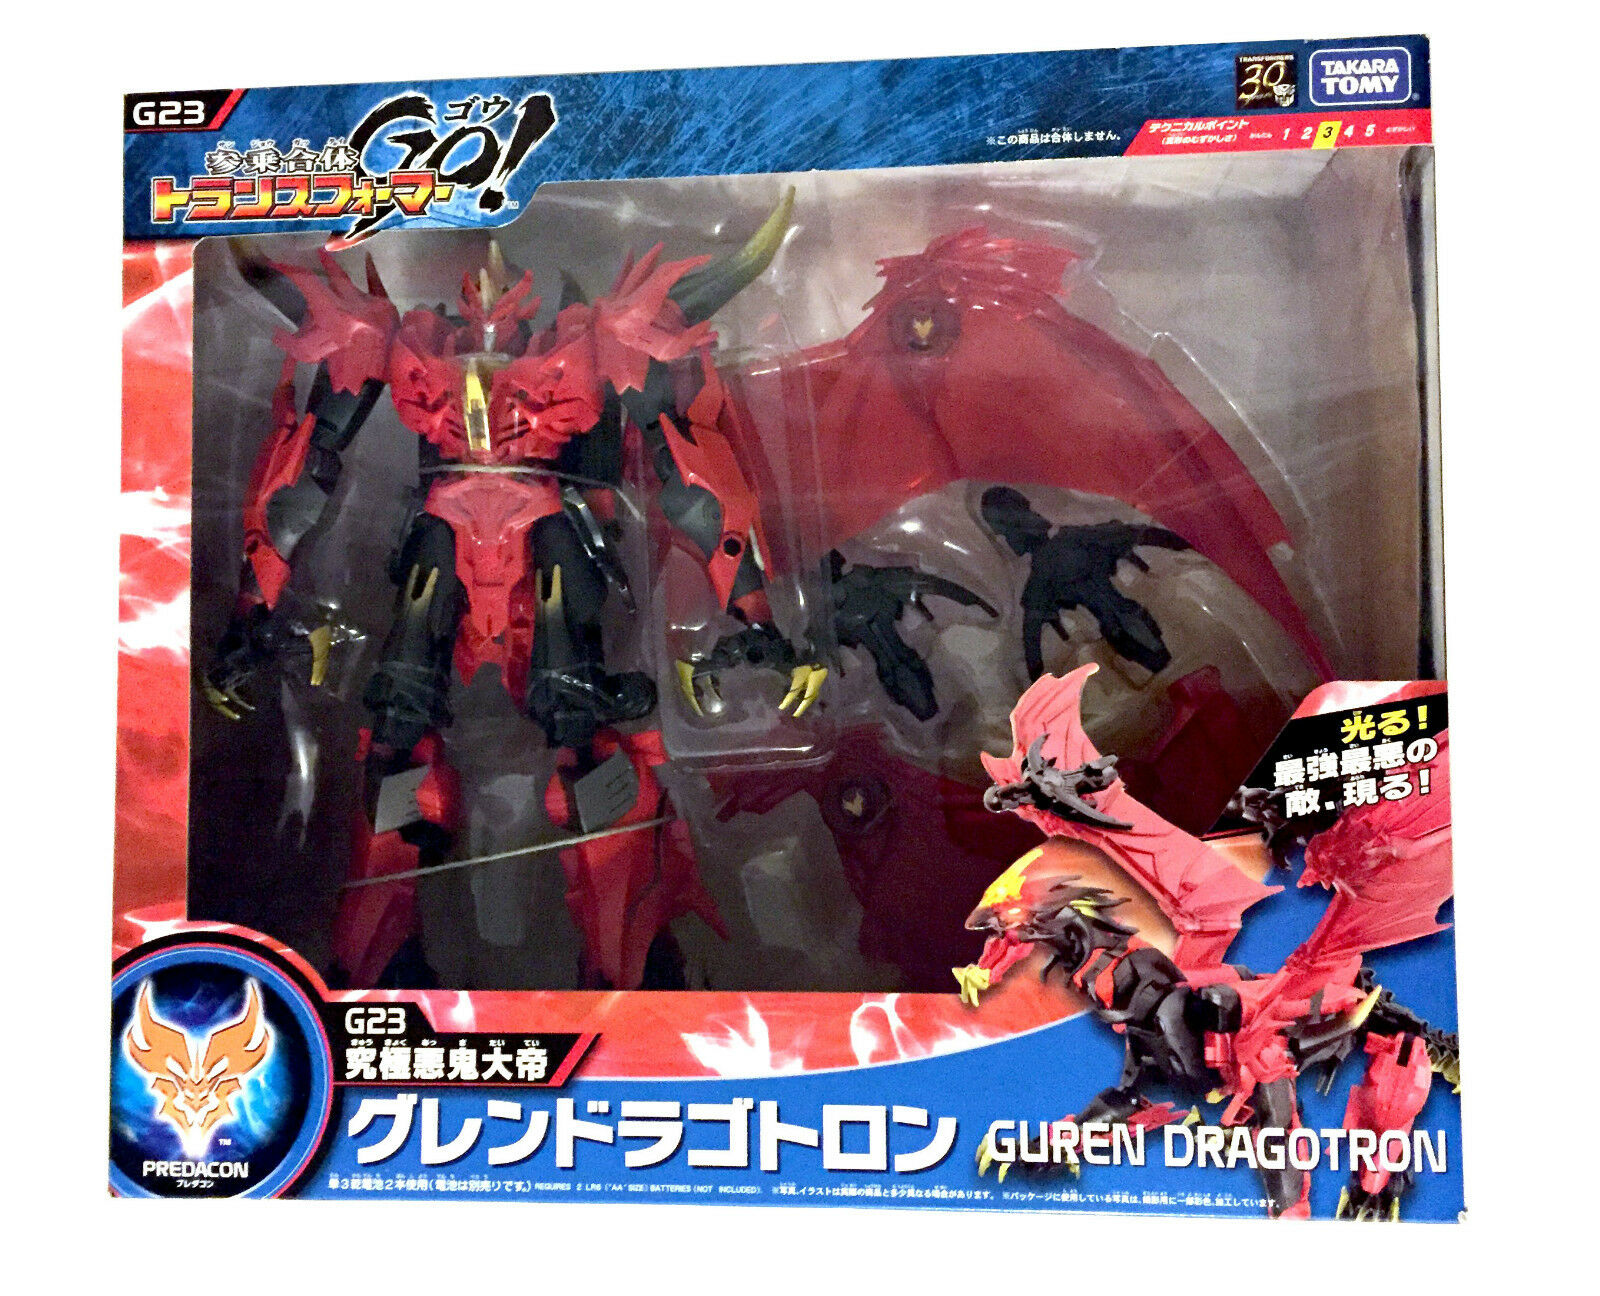 Transformers Prime Beast Hunter  Go G23 Guren Dragotron (Ultimate ProugeAKING) DGSIM  magasin en ligne